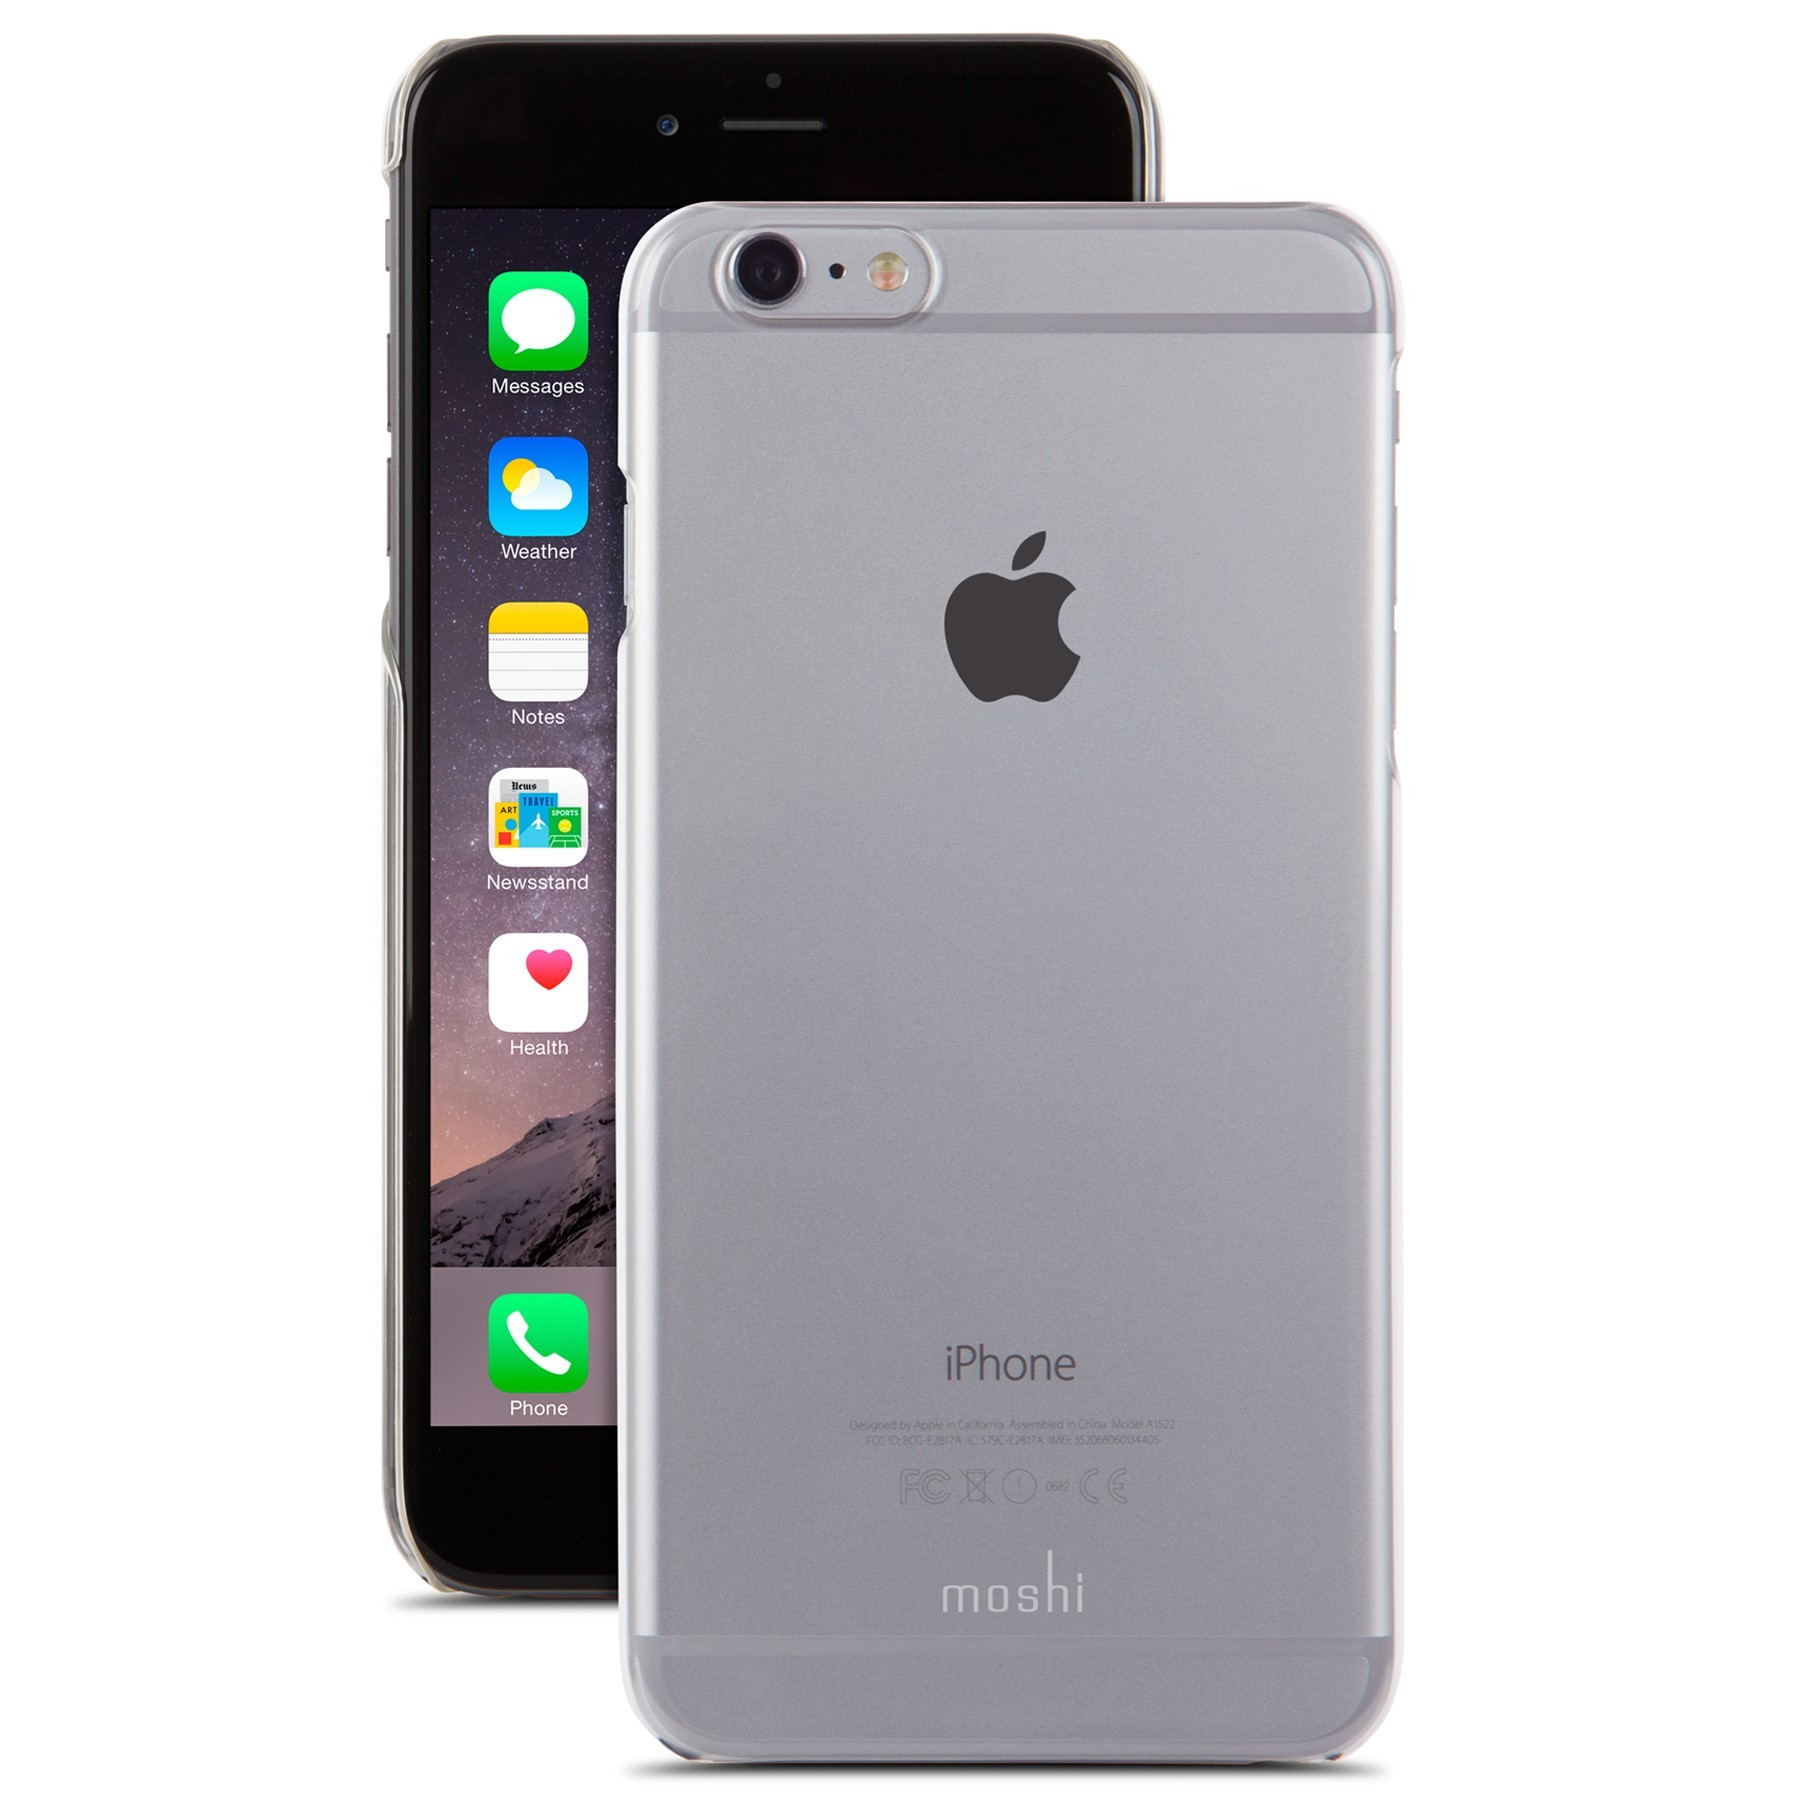 iPhone 6 Plus 64G Space Gray Ảnh số 38368058